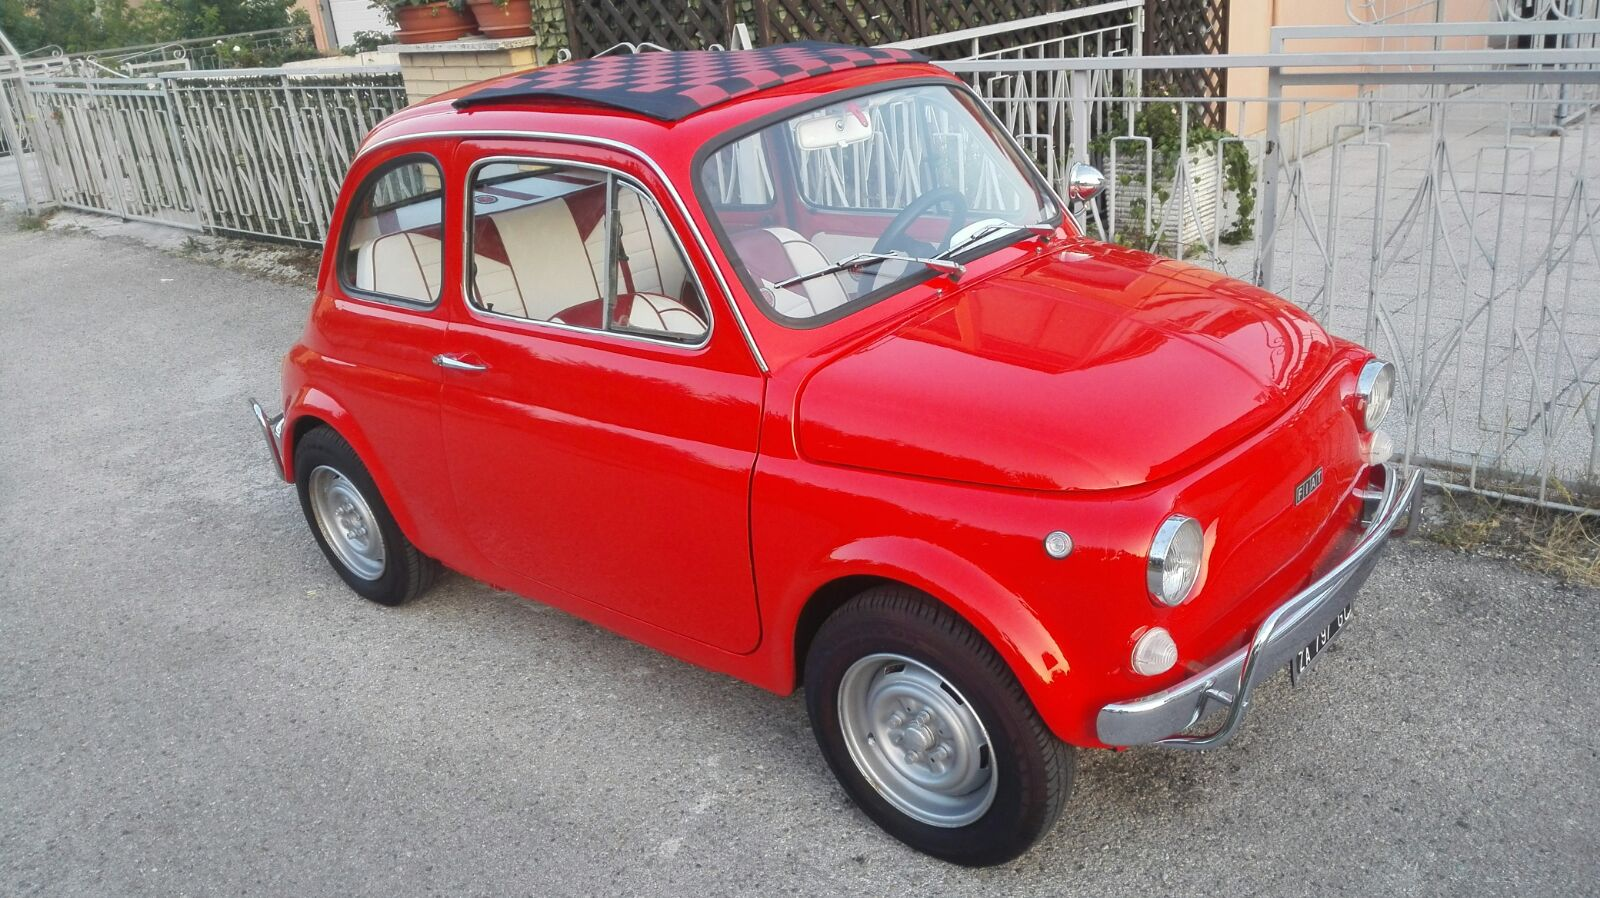 1969 fiat 500 110 f italian vintage car red extra luxury upholstery. Black Bedroom Furniture Sets. Home Design Ideas